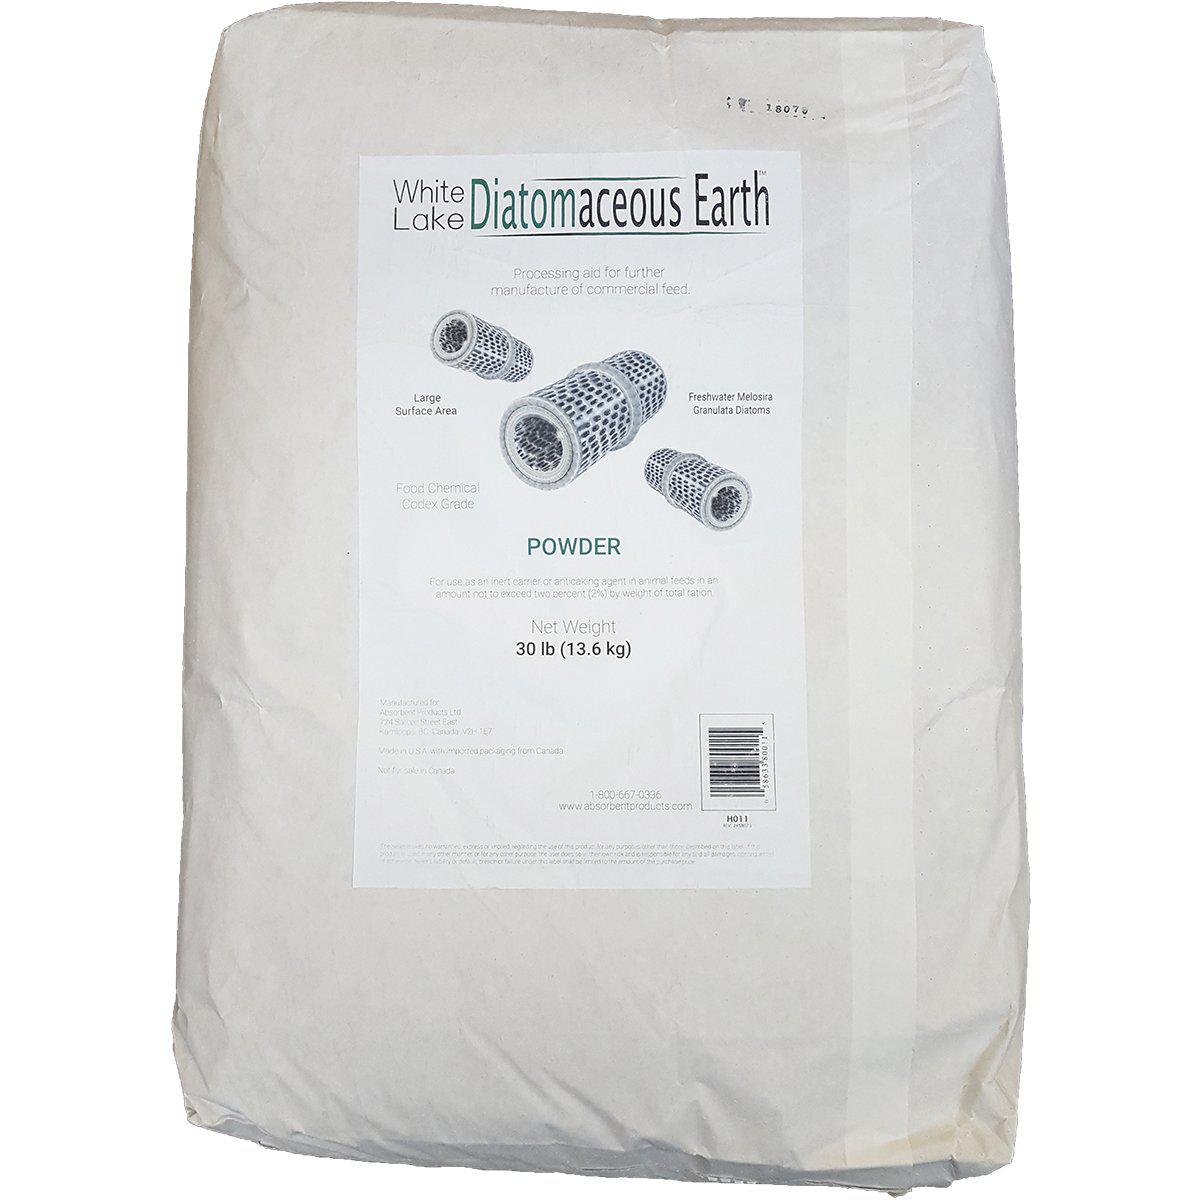 White Lake Diatomaceous Earth™ (Food Grade) 13.6 KG Bag - Critter Country Supply Ltd.